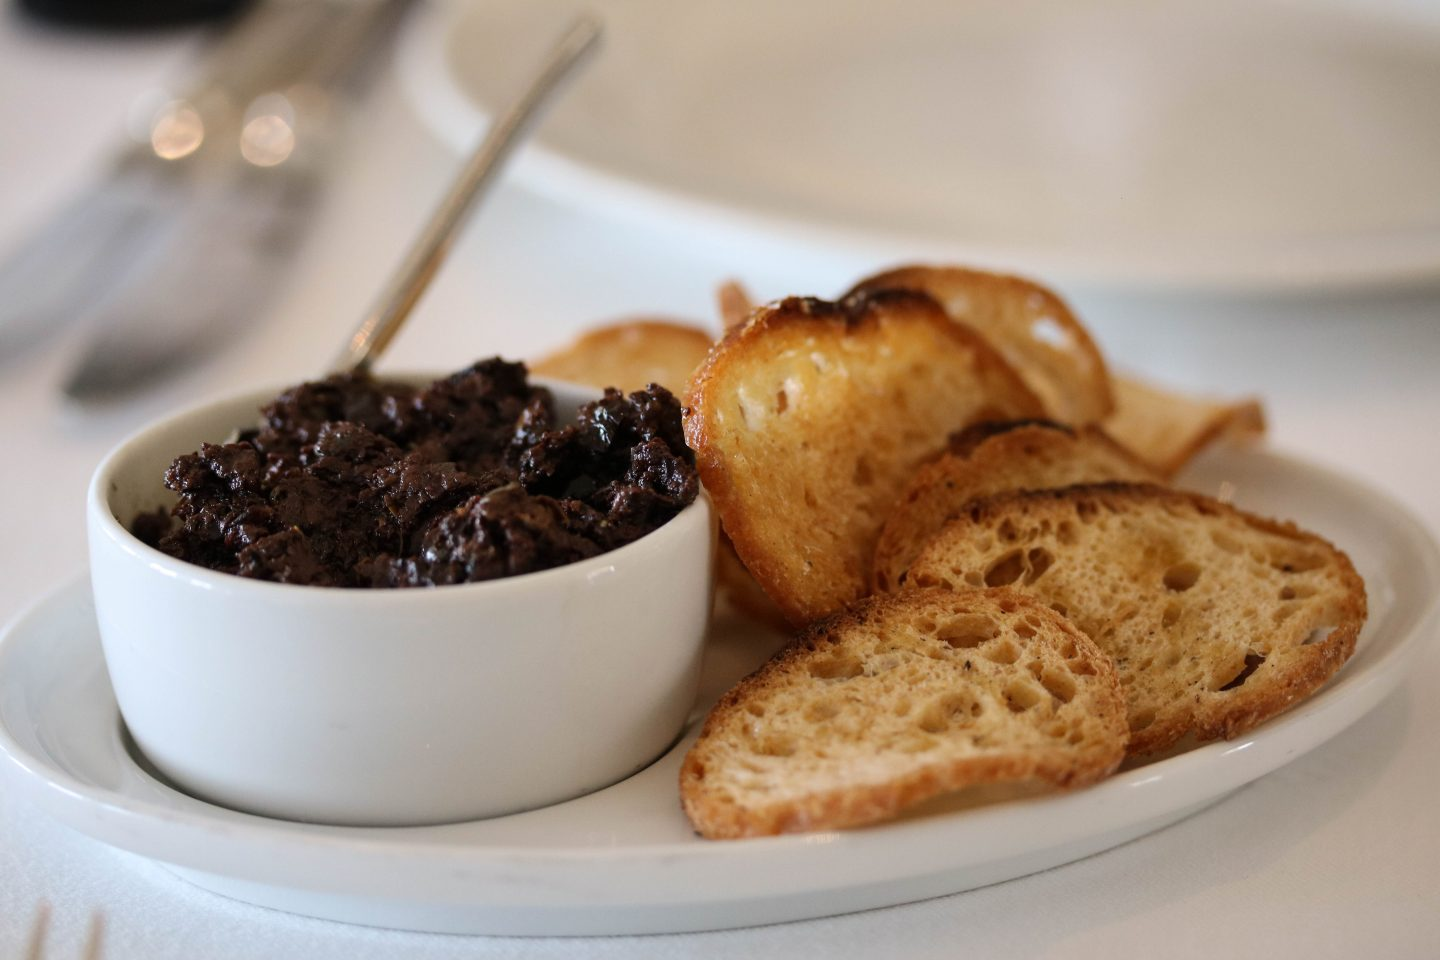 Olive tapenade with crisp bread at La Petite Maison, the best restaurant for lunch in Dubai on the Lifestyle Enthusiast blog